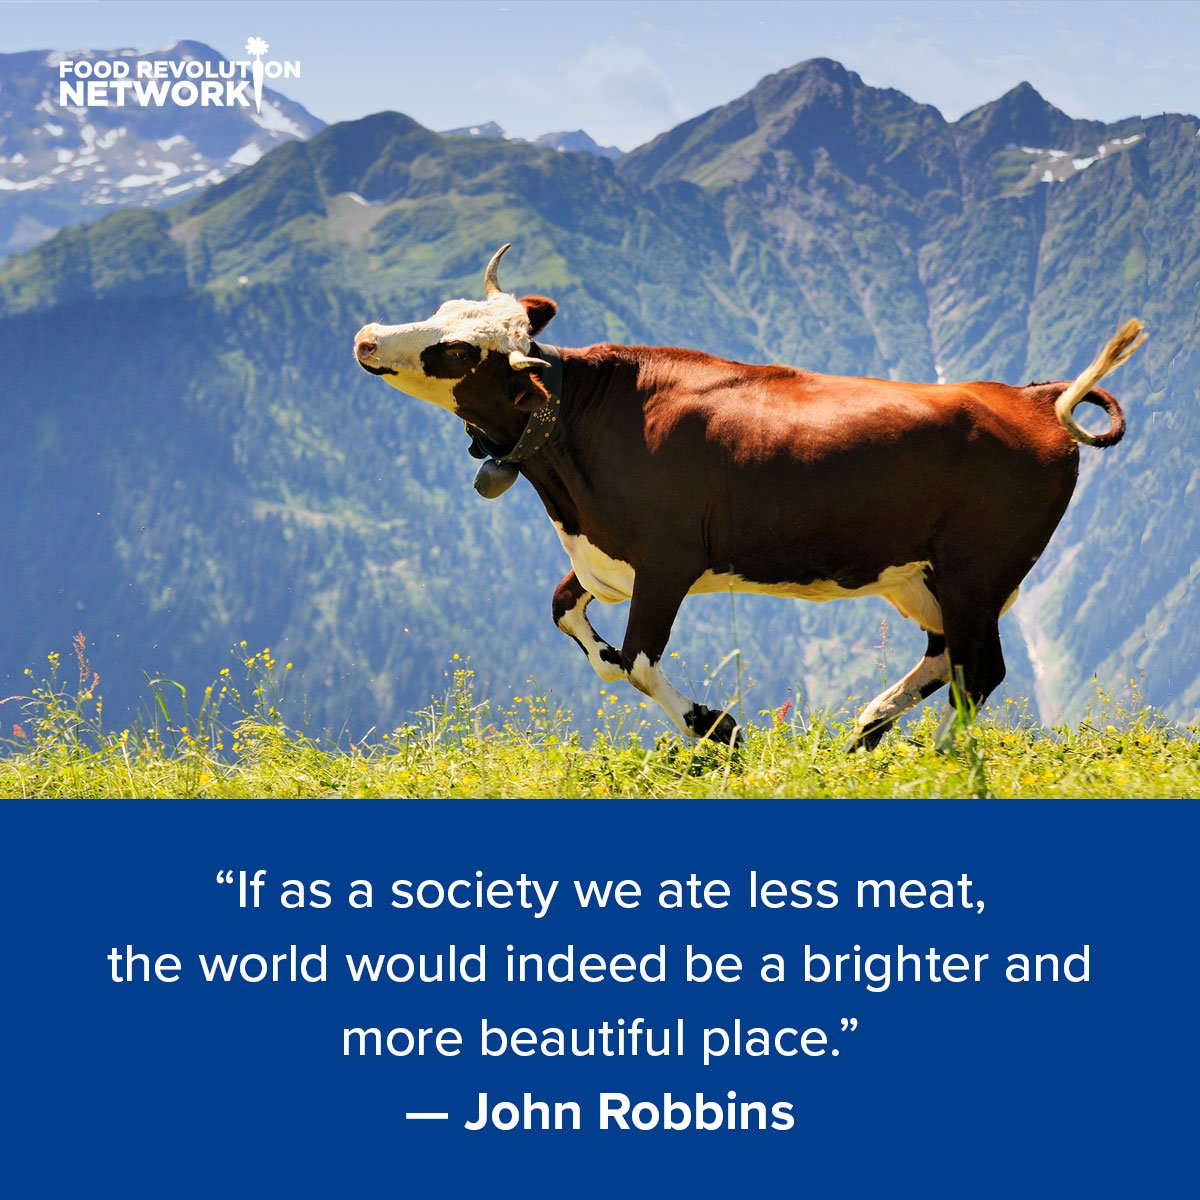 If as a society we ate less meat, the world would indeed be a brighter and more beautiful place. — John Robbins